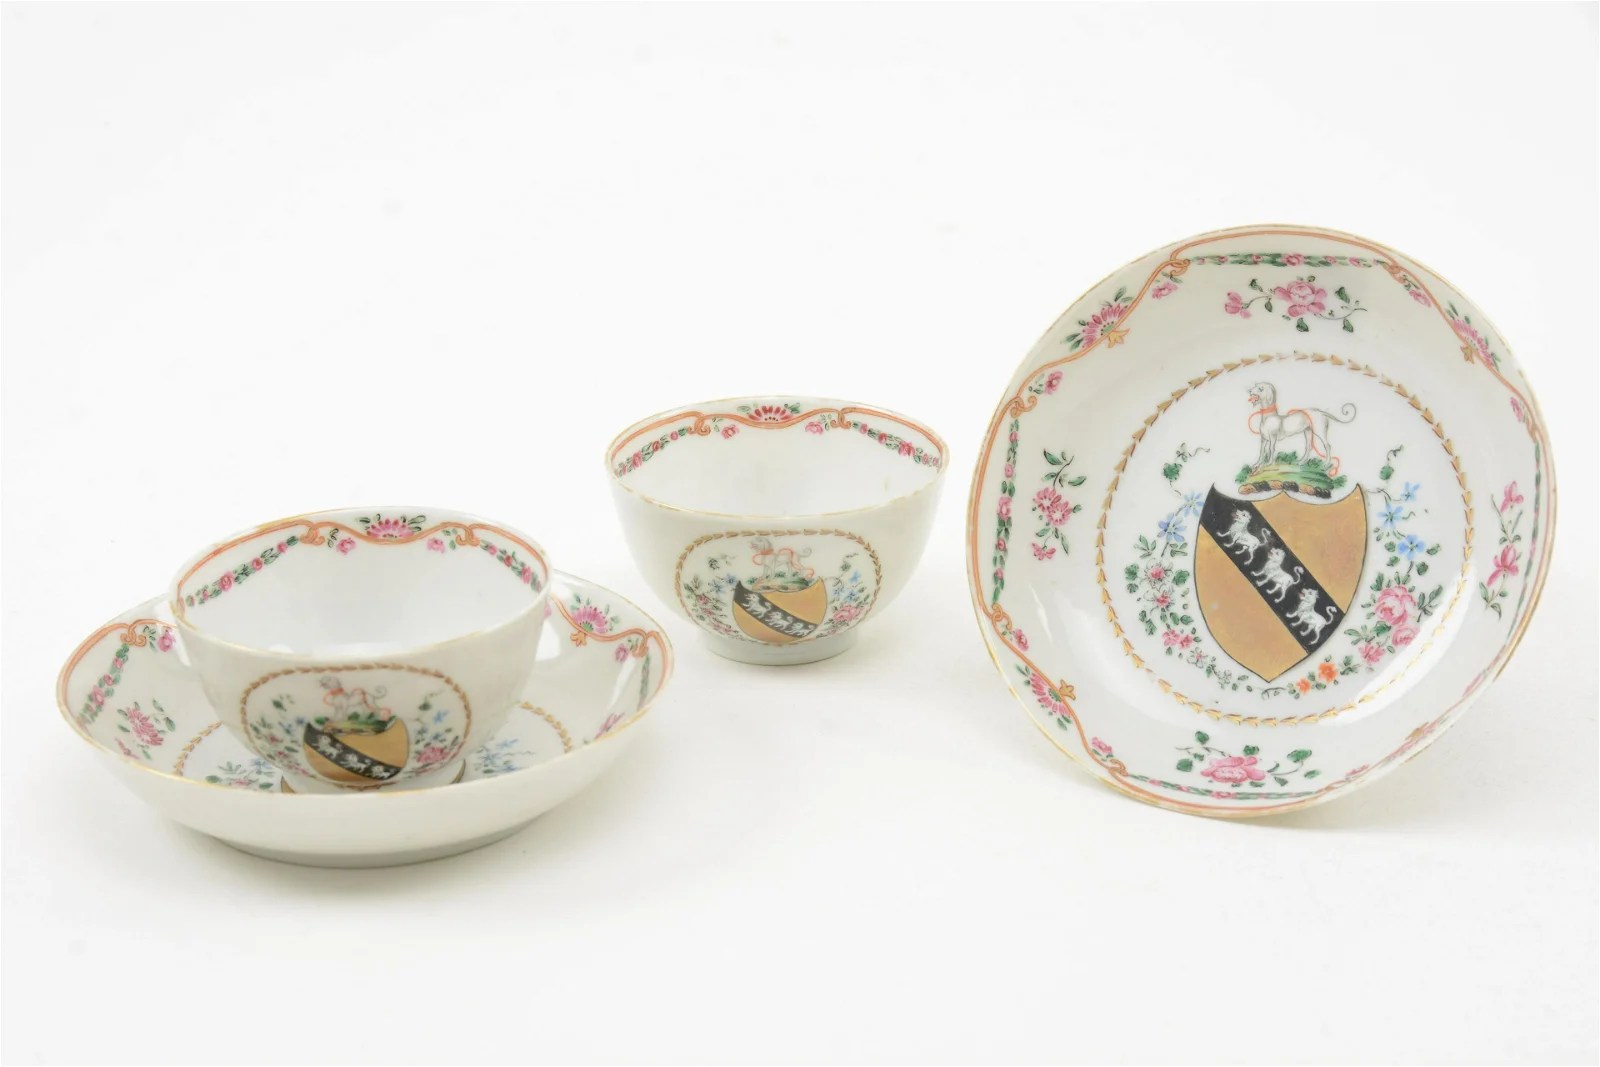 Chinese Export Porcelain Armorial Cups, 18th C.